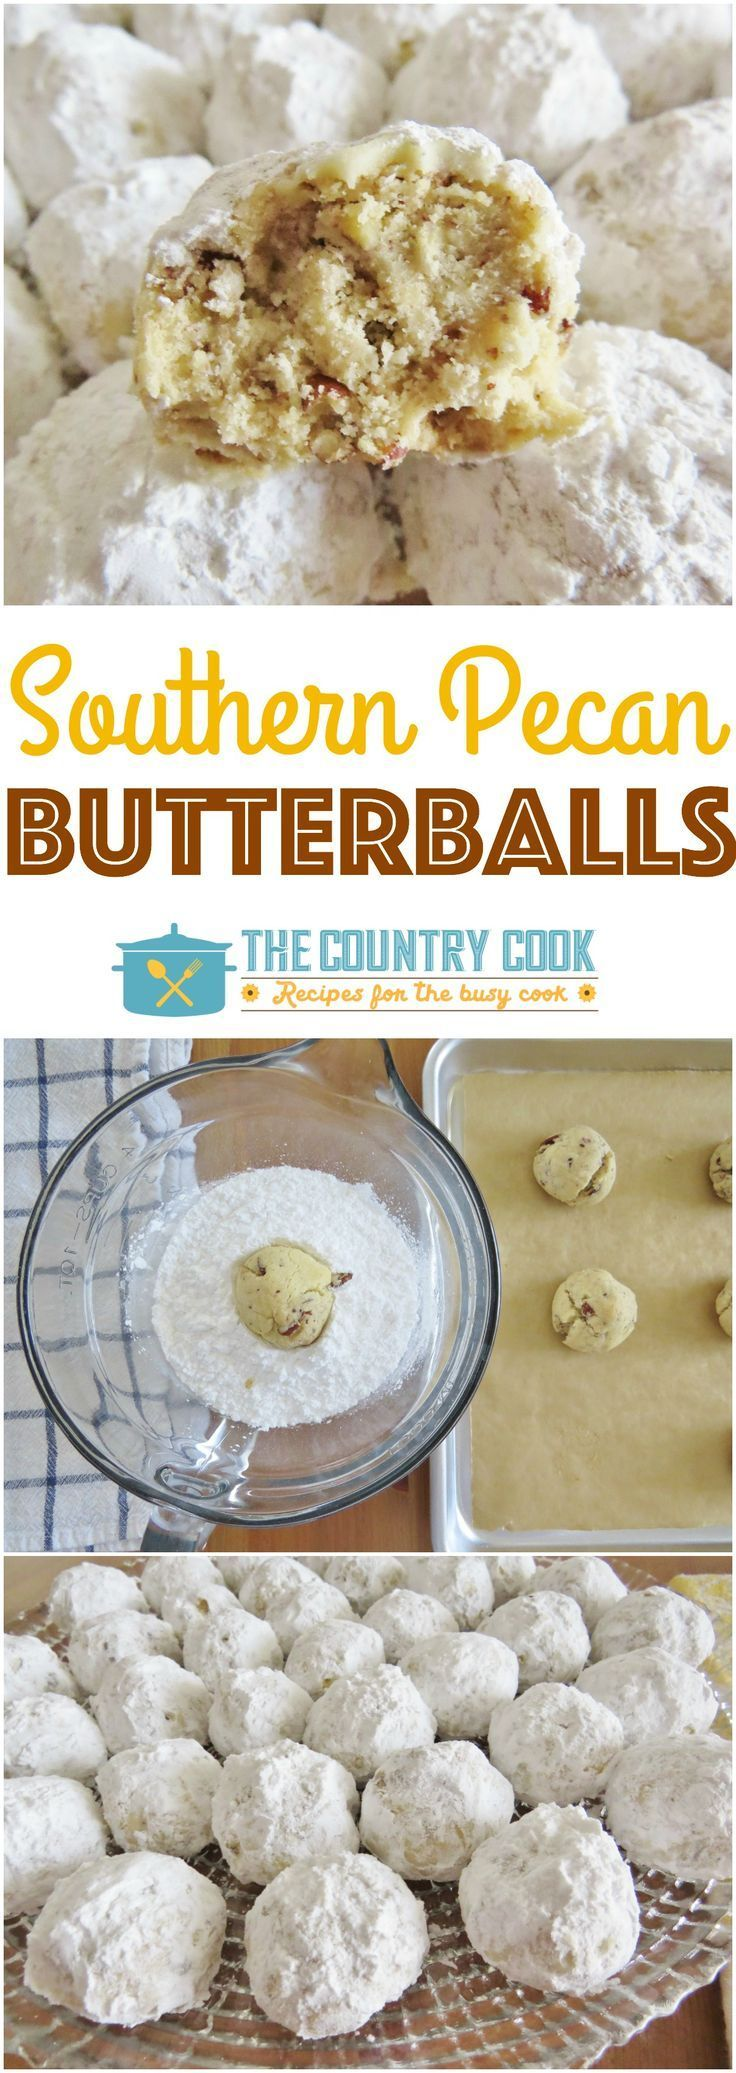 Southern Pecan Butterballs are known by many names: Snowball Cookies, Mexican Wedding Cookies, Russian Tea Cakes and Danish Wedding Cookies! #MexicanWeddingIdeas